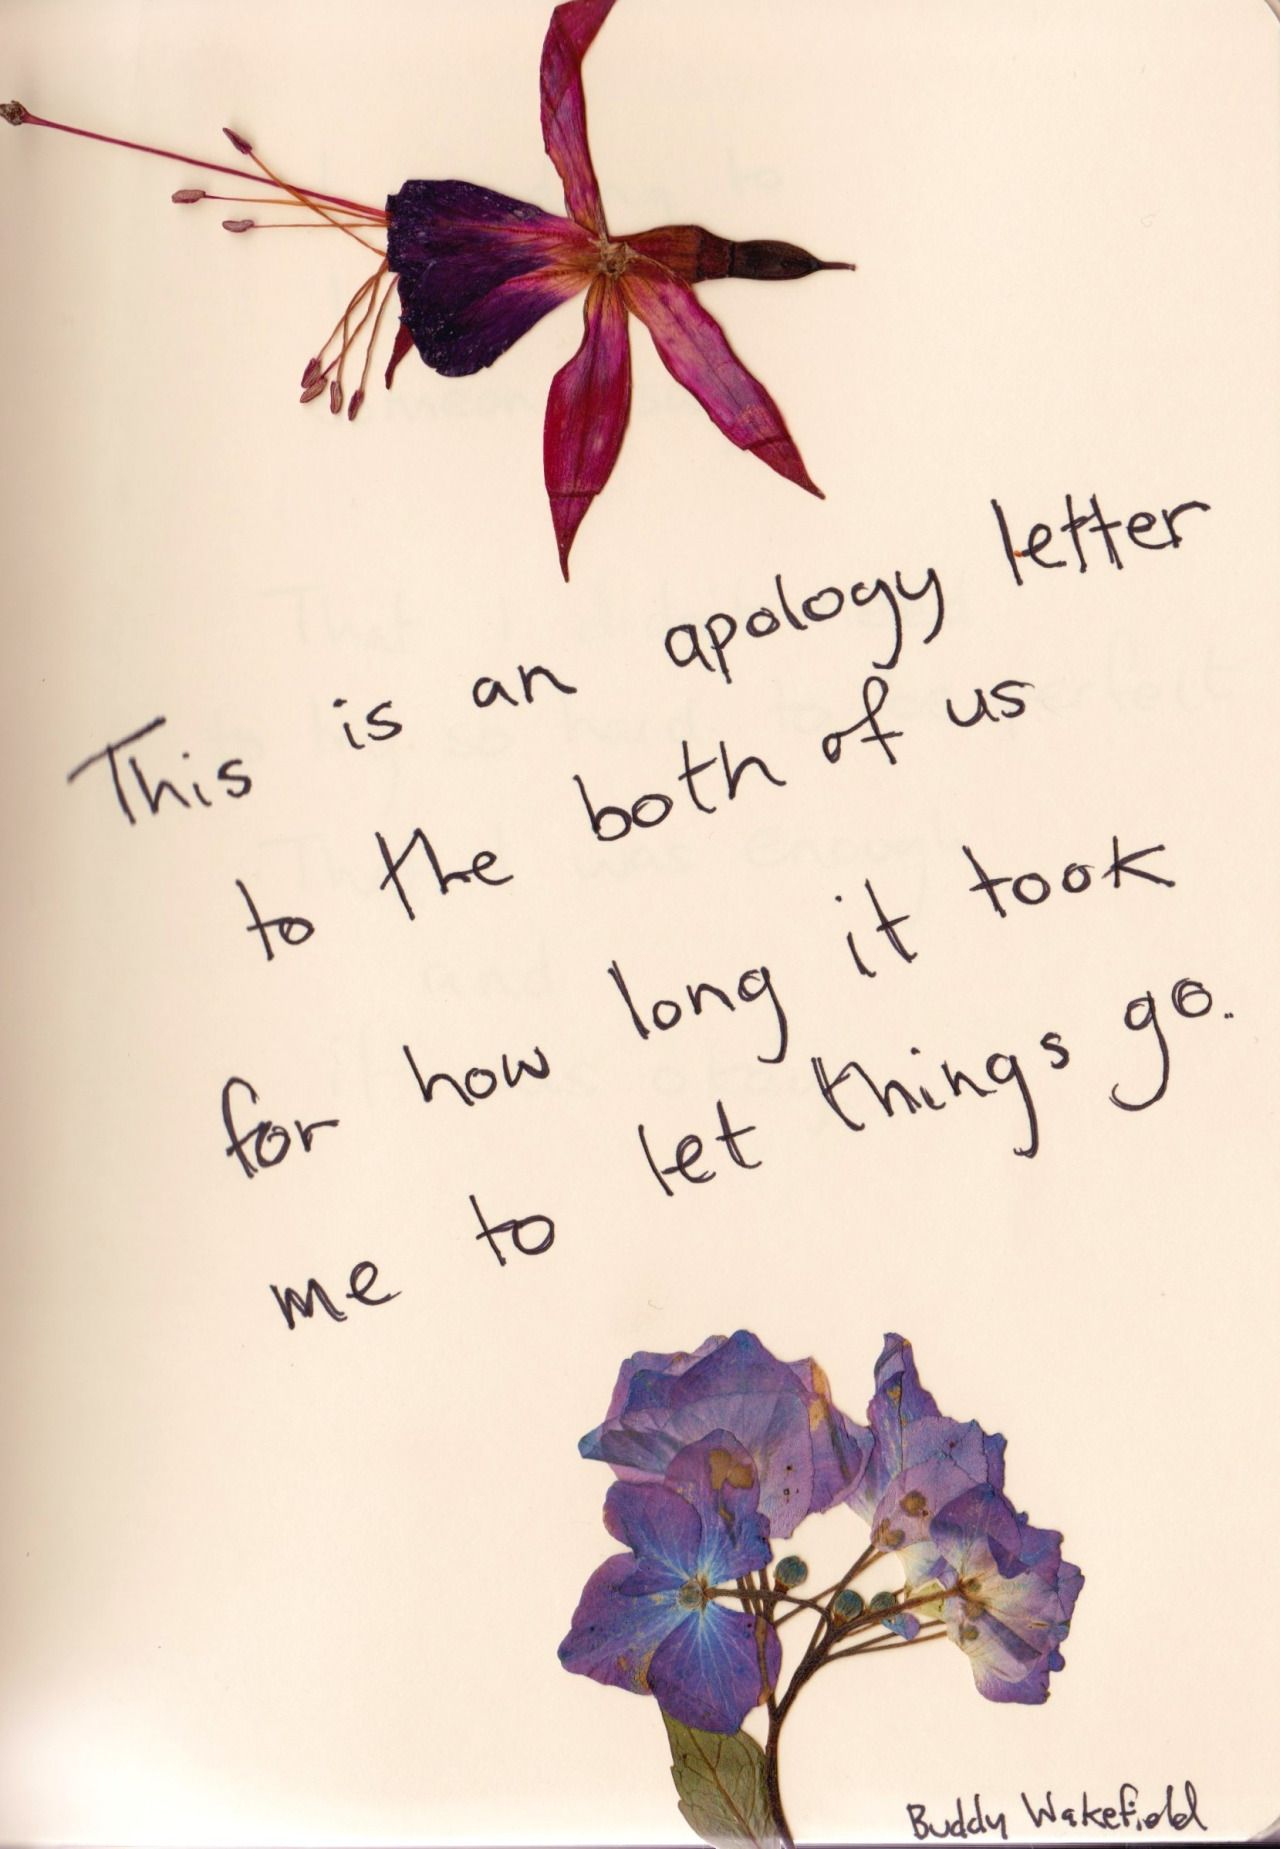 This Is An Apology Letter To Both Of Us For How Long It Took Me To